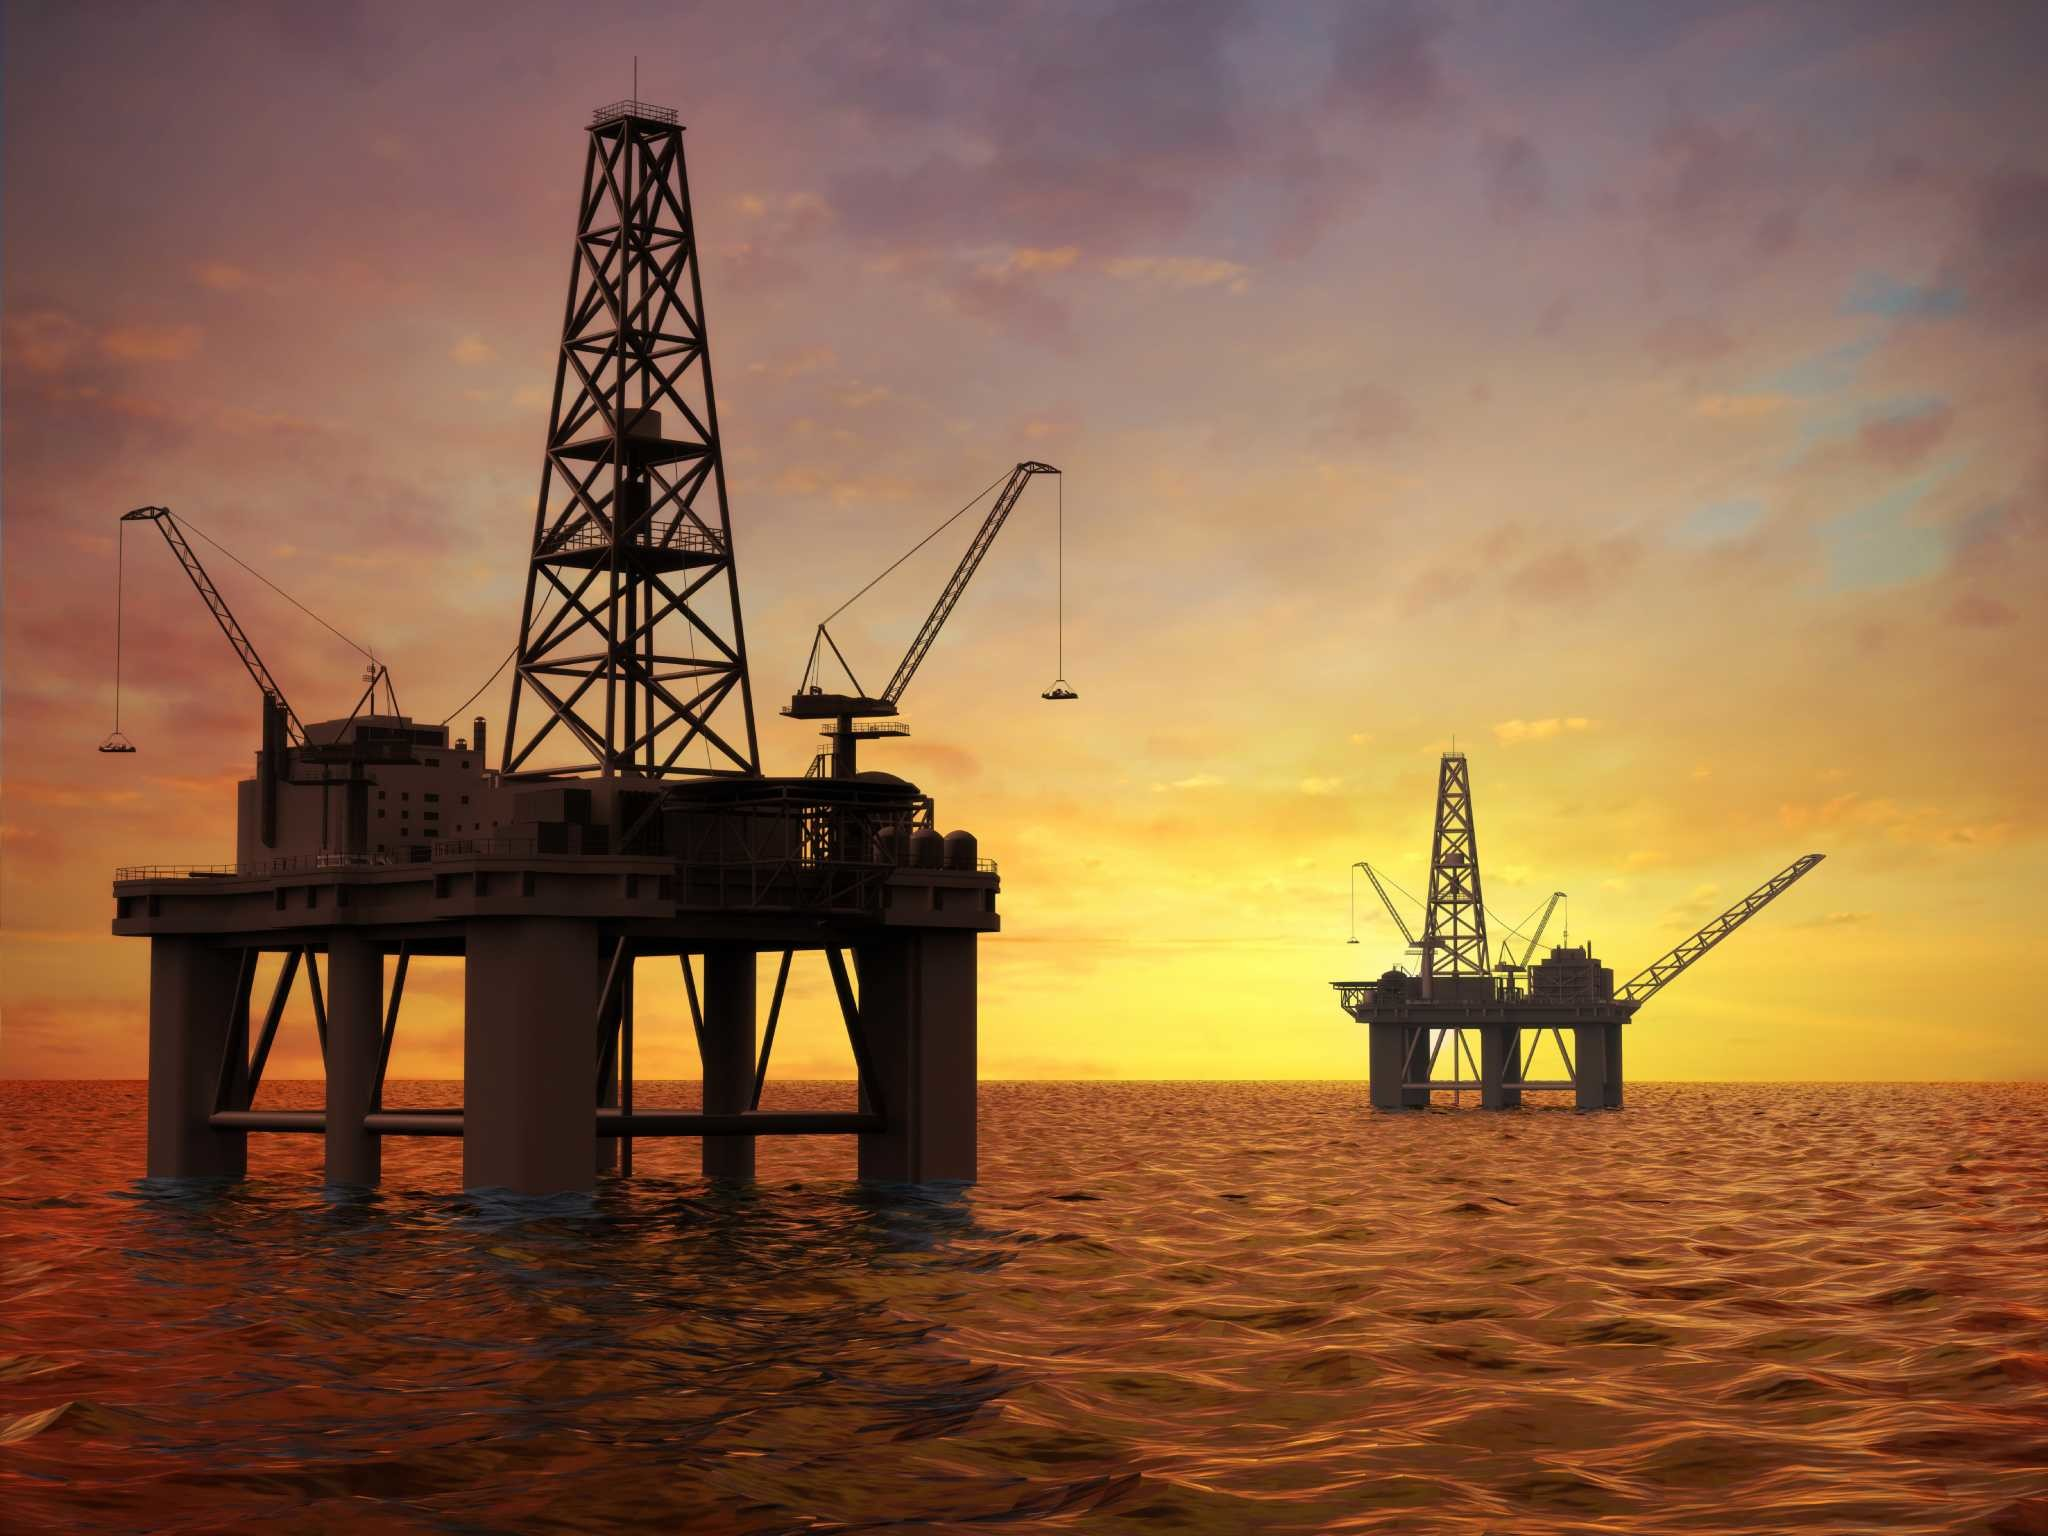 2048x1536 Images For > Oil And Gas Platform Wallpaper